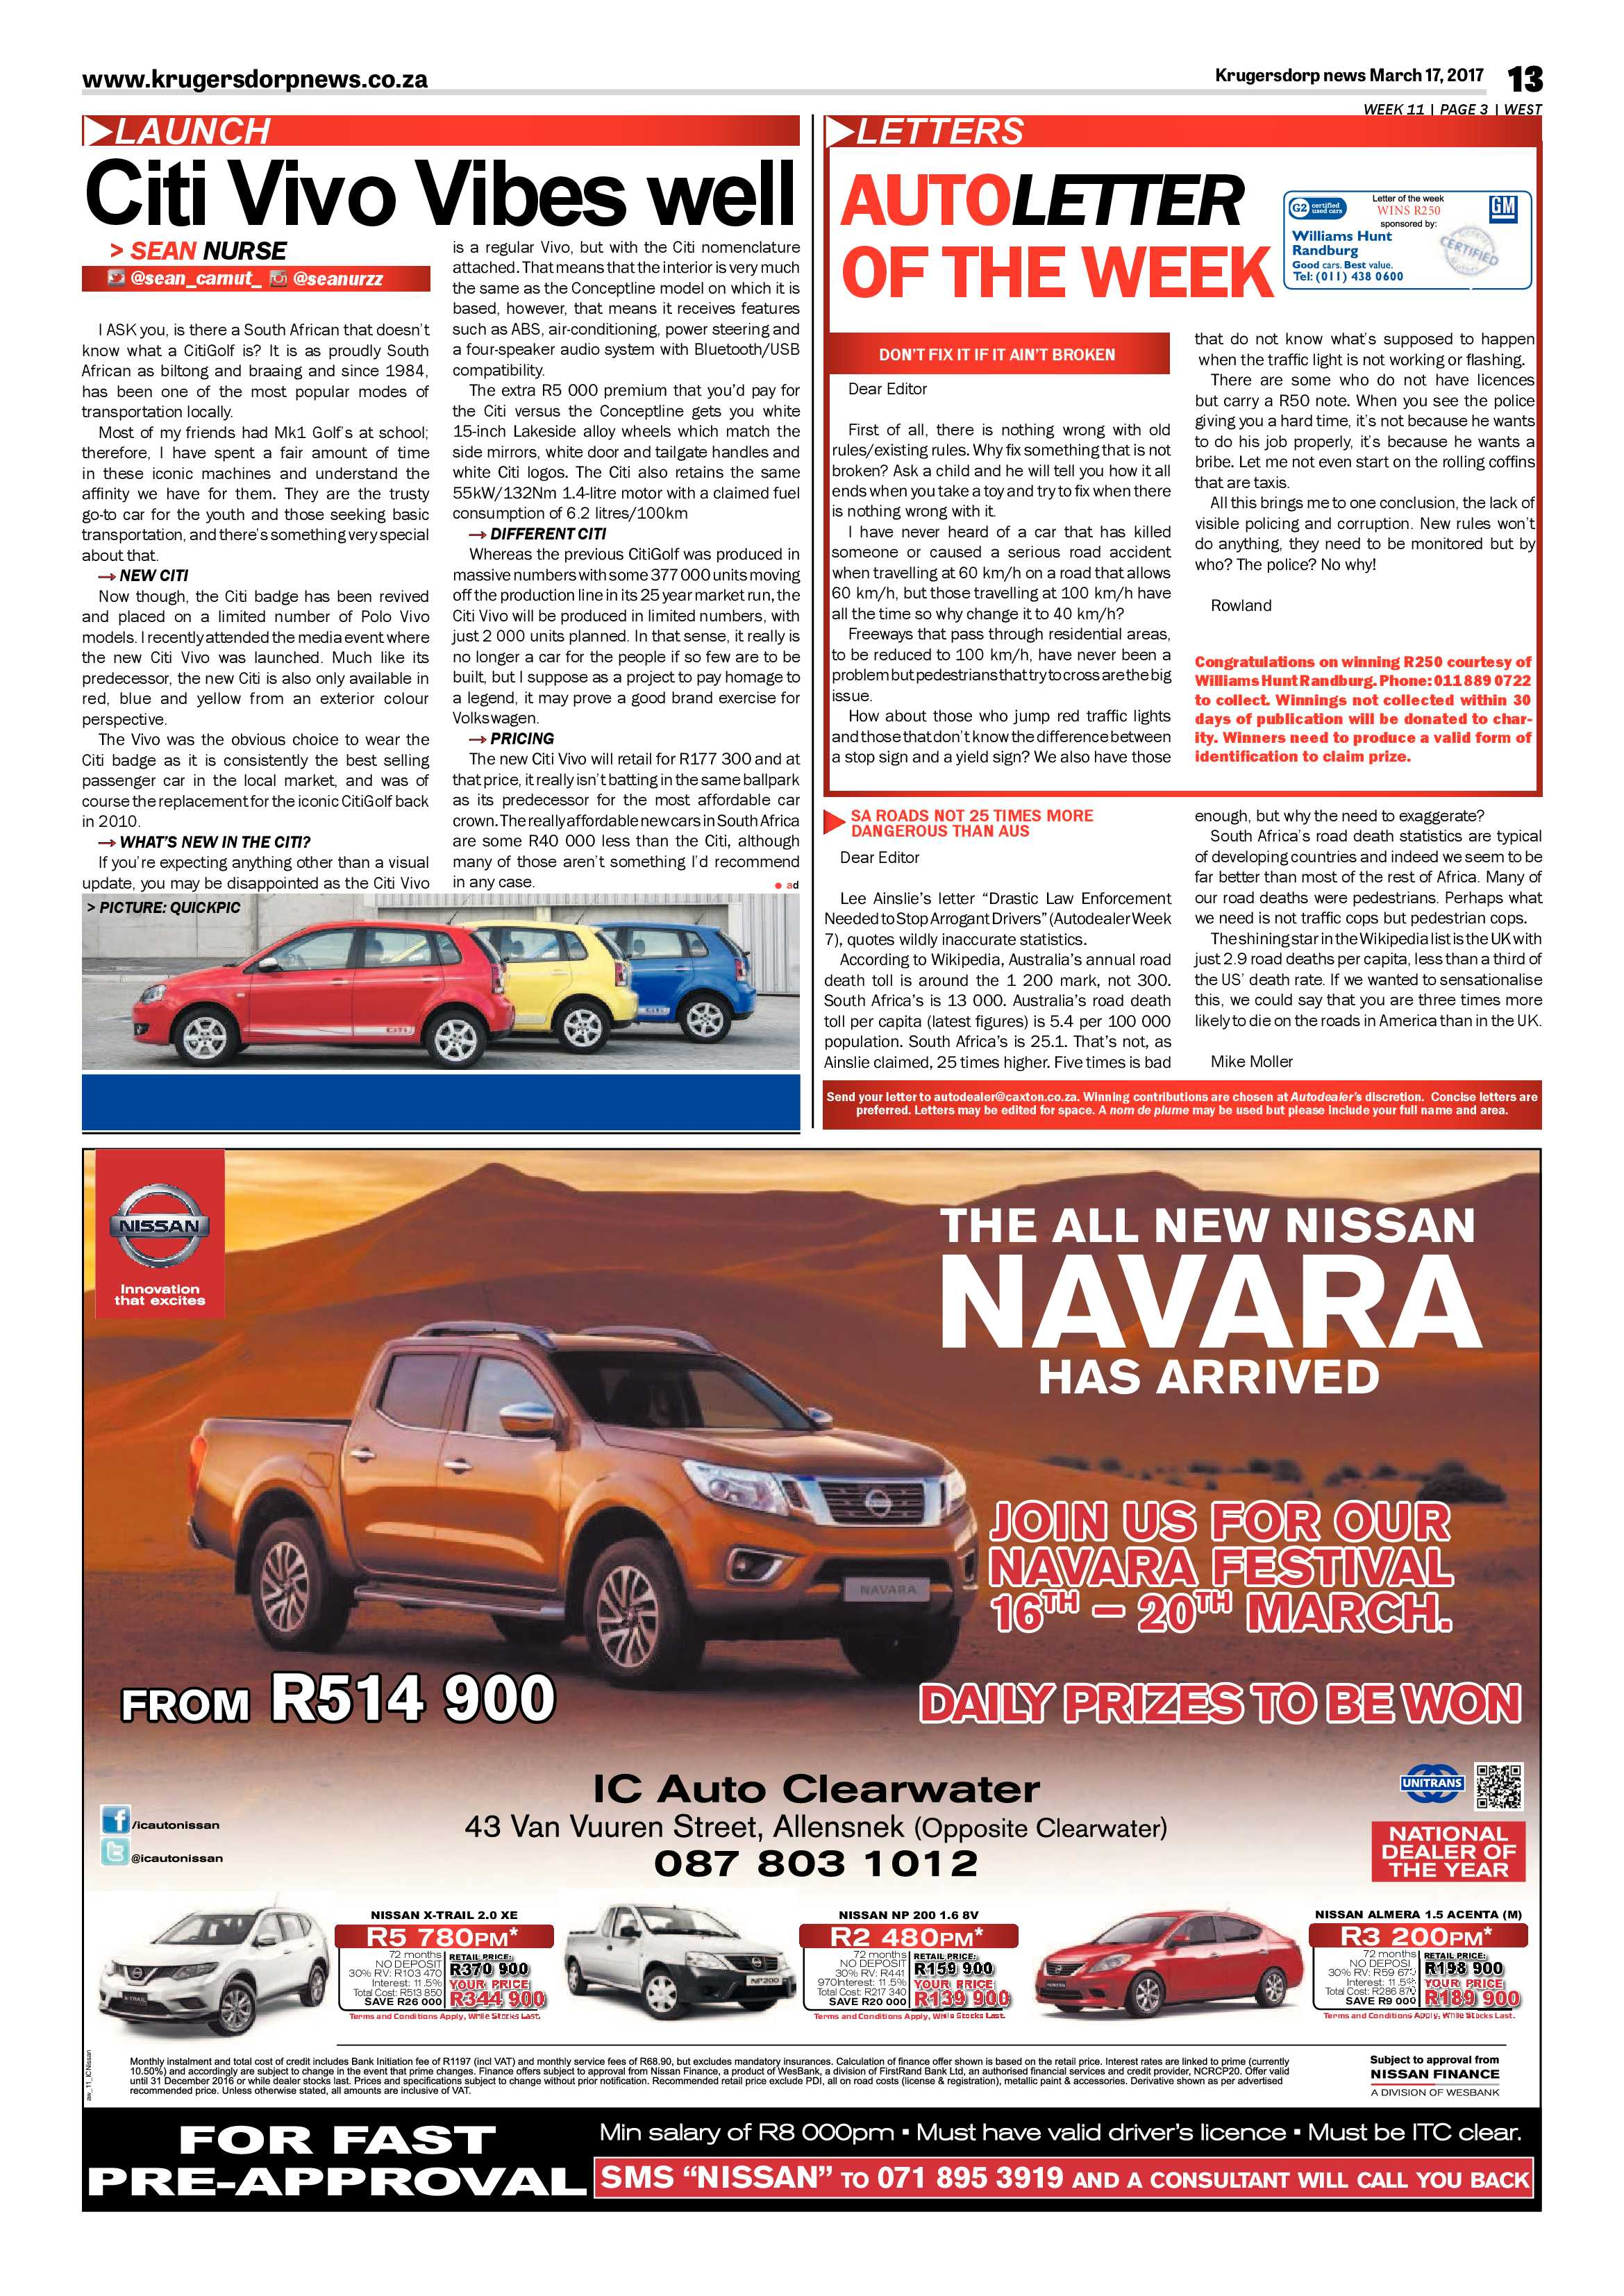 krugersdorp-news-17-march-2017-epapers-page-13